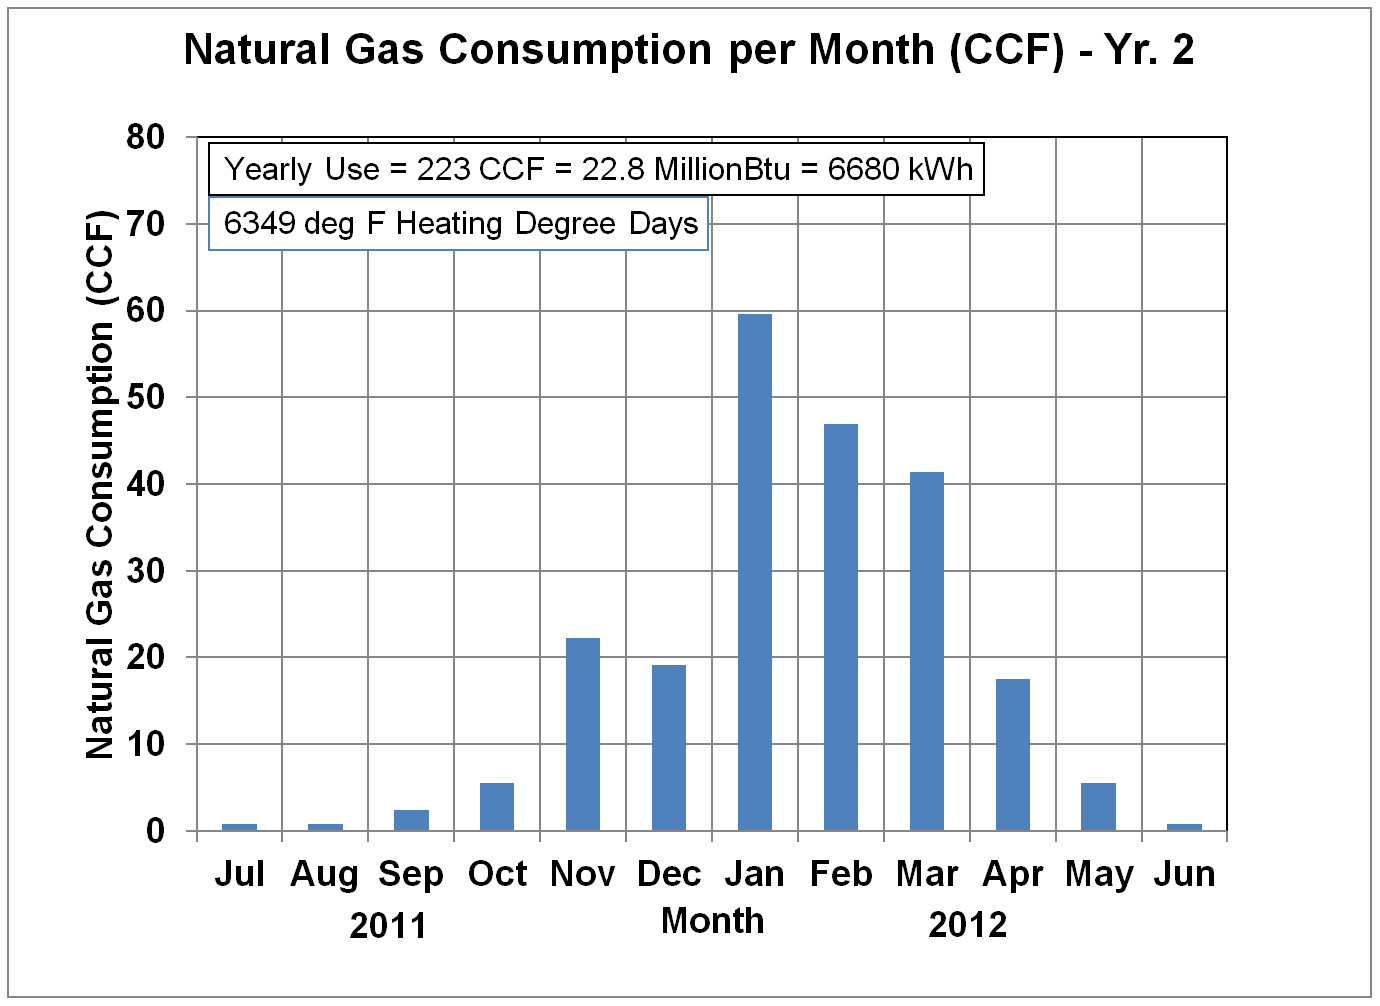 Natural Gas Usage in CCF - Yr. 2